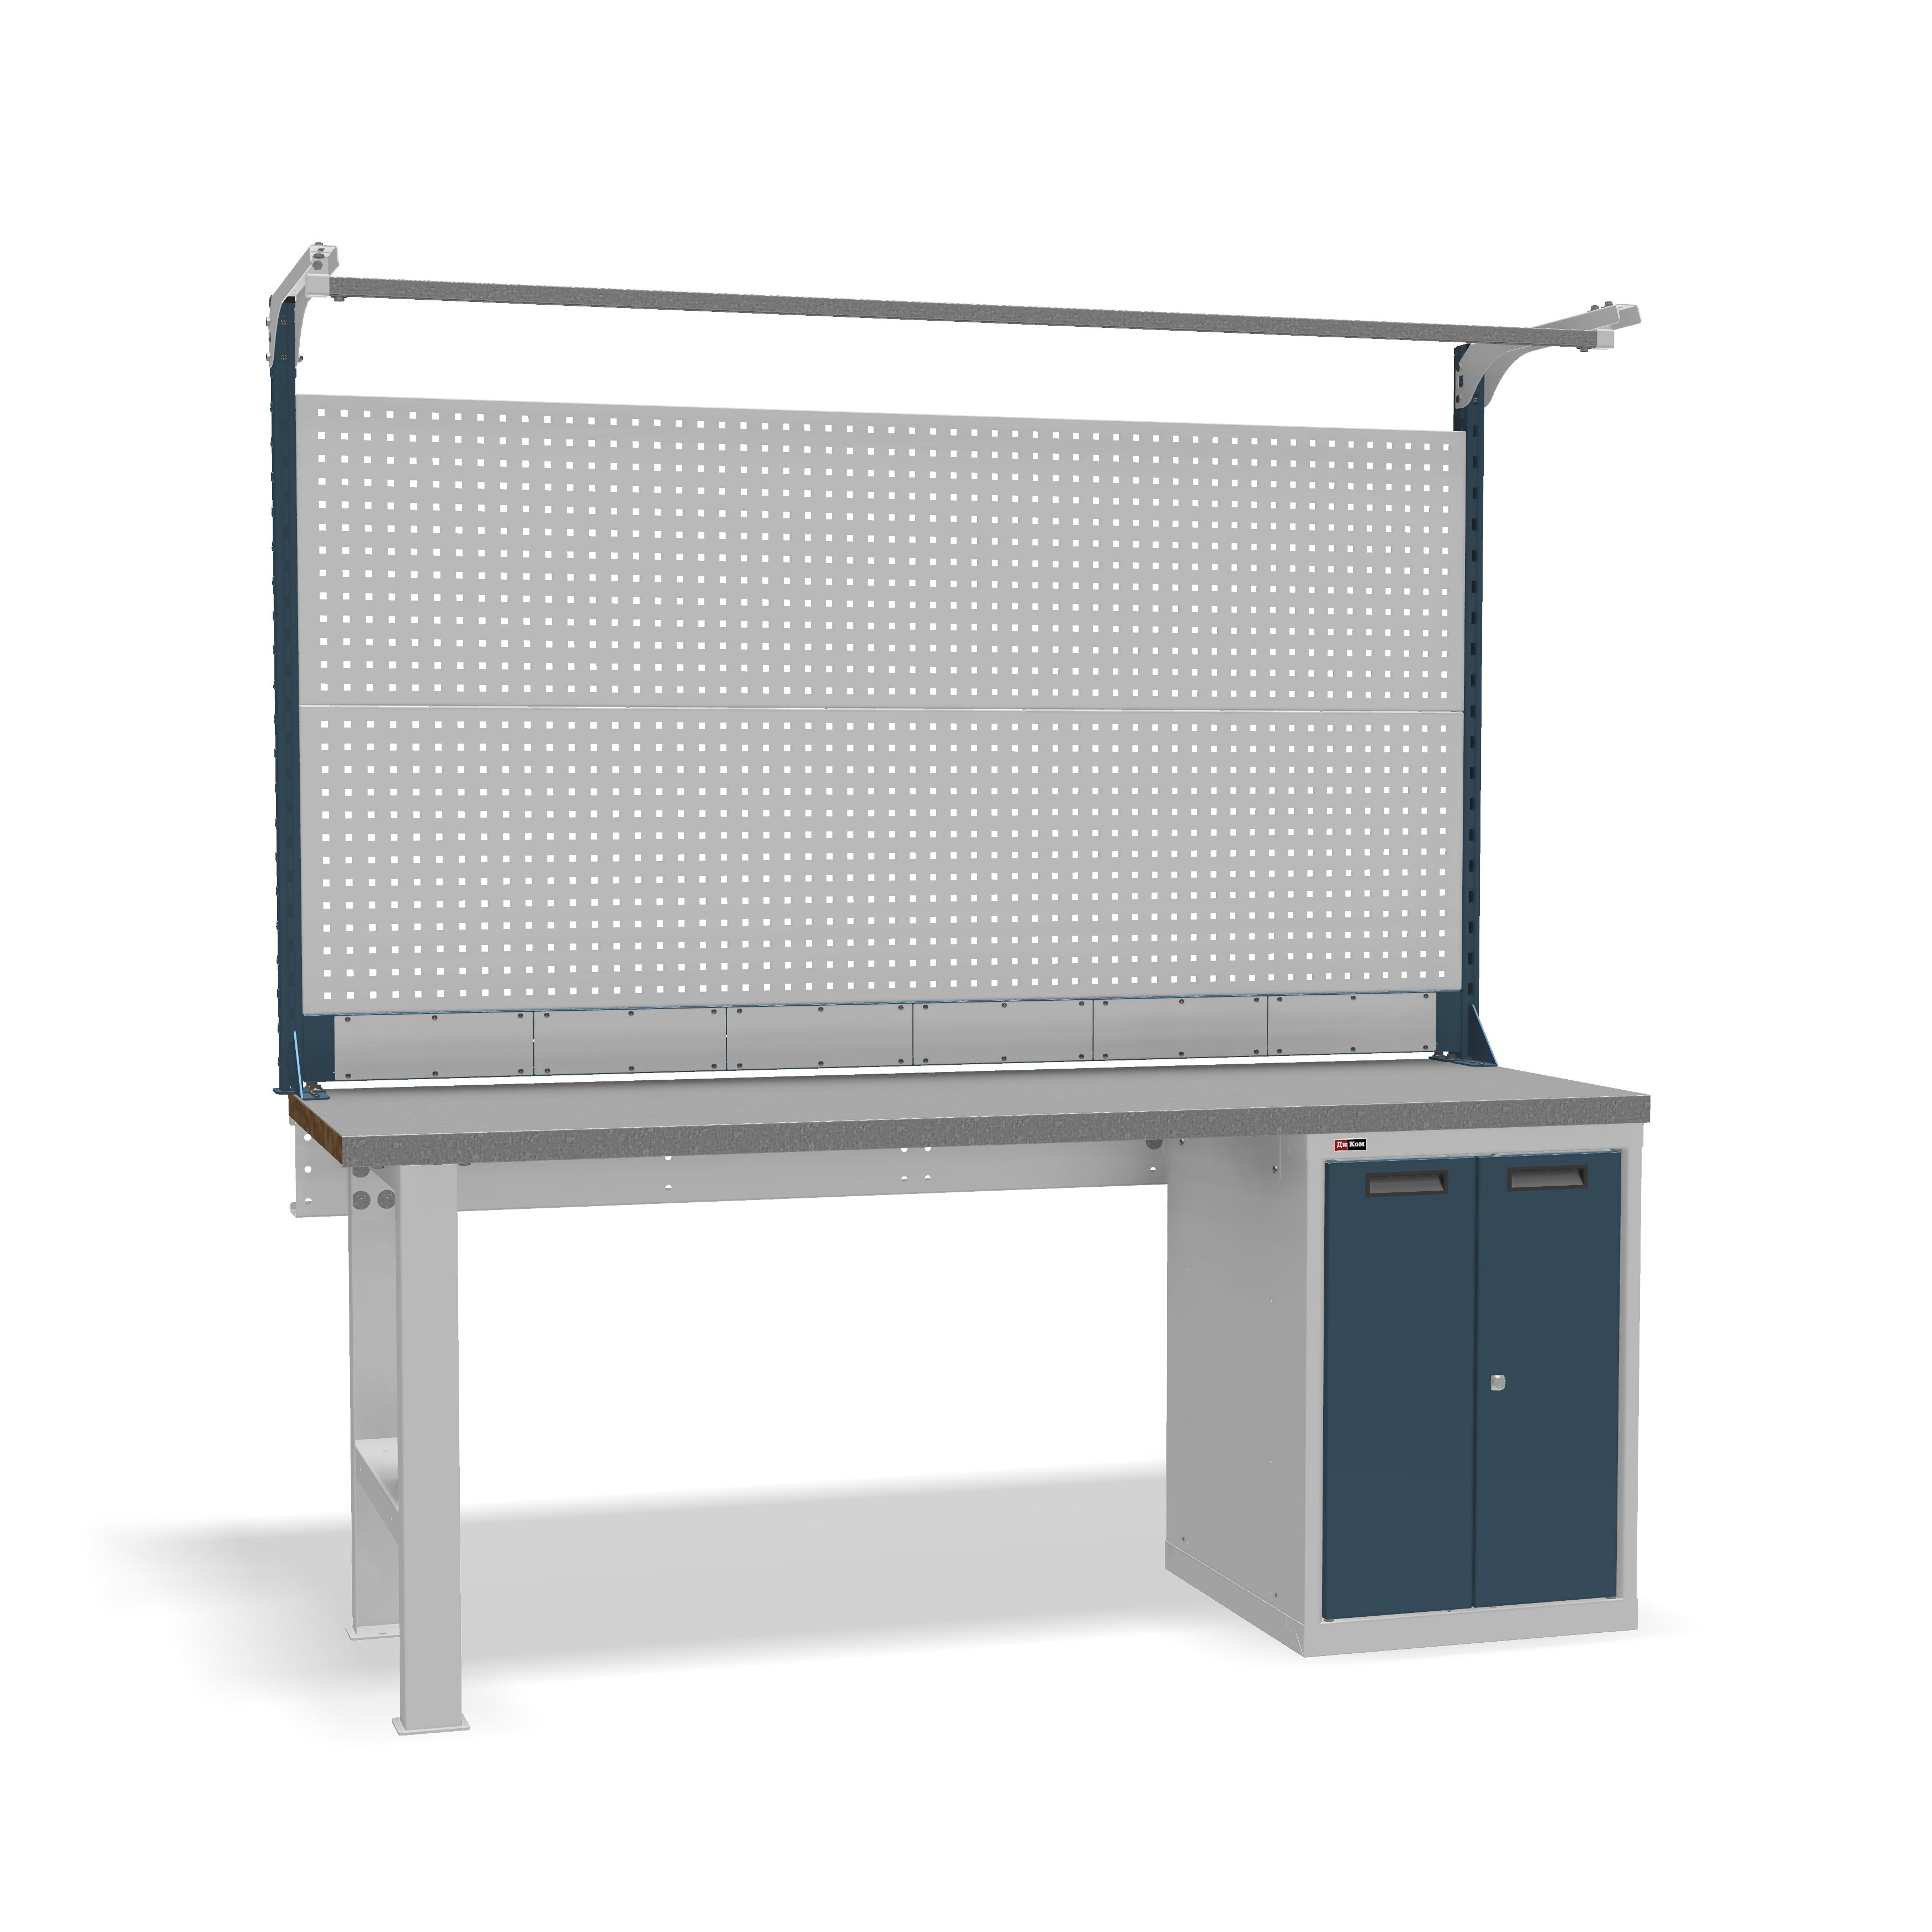 DiKom VS-200-03 Workbench + DiKom Perforated Panel VS-200-E6